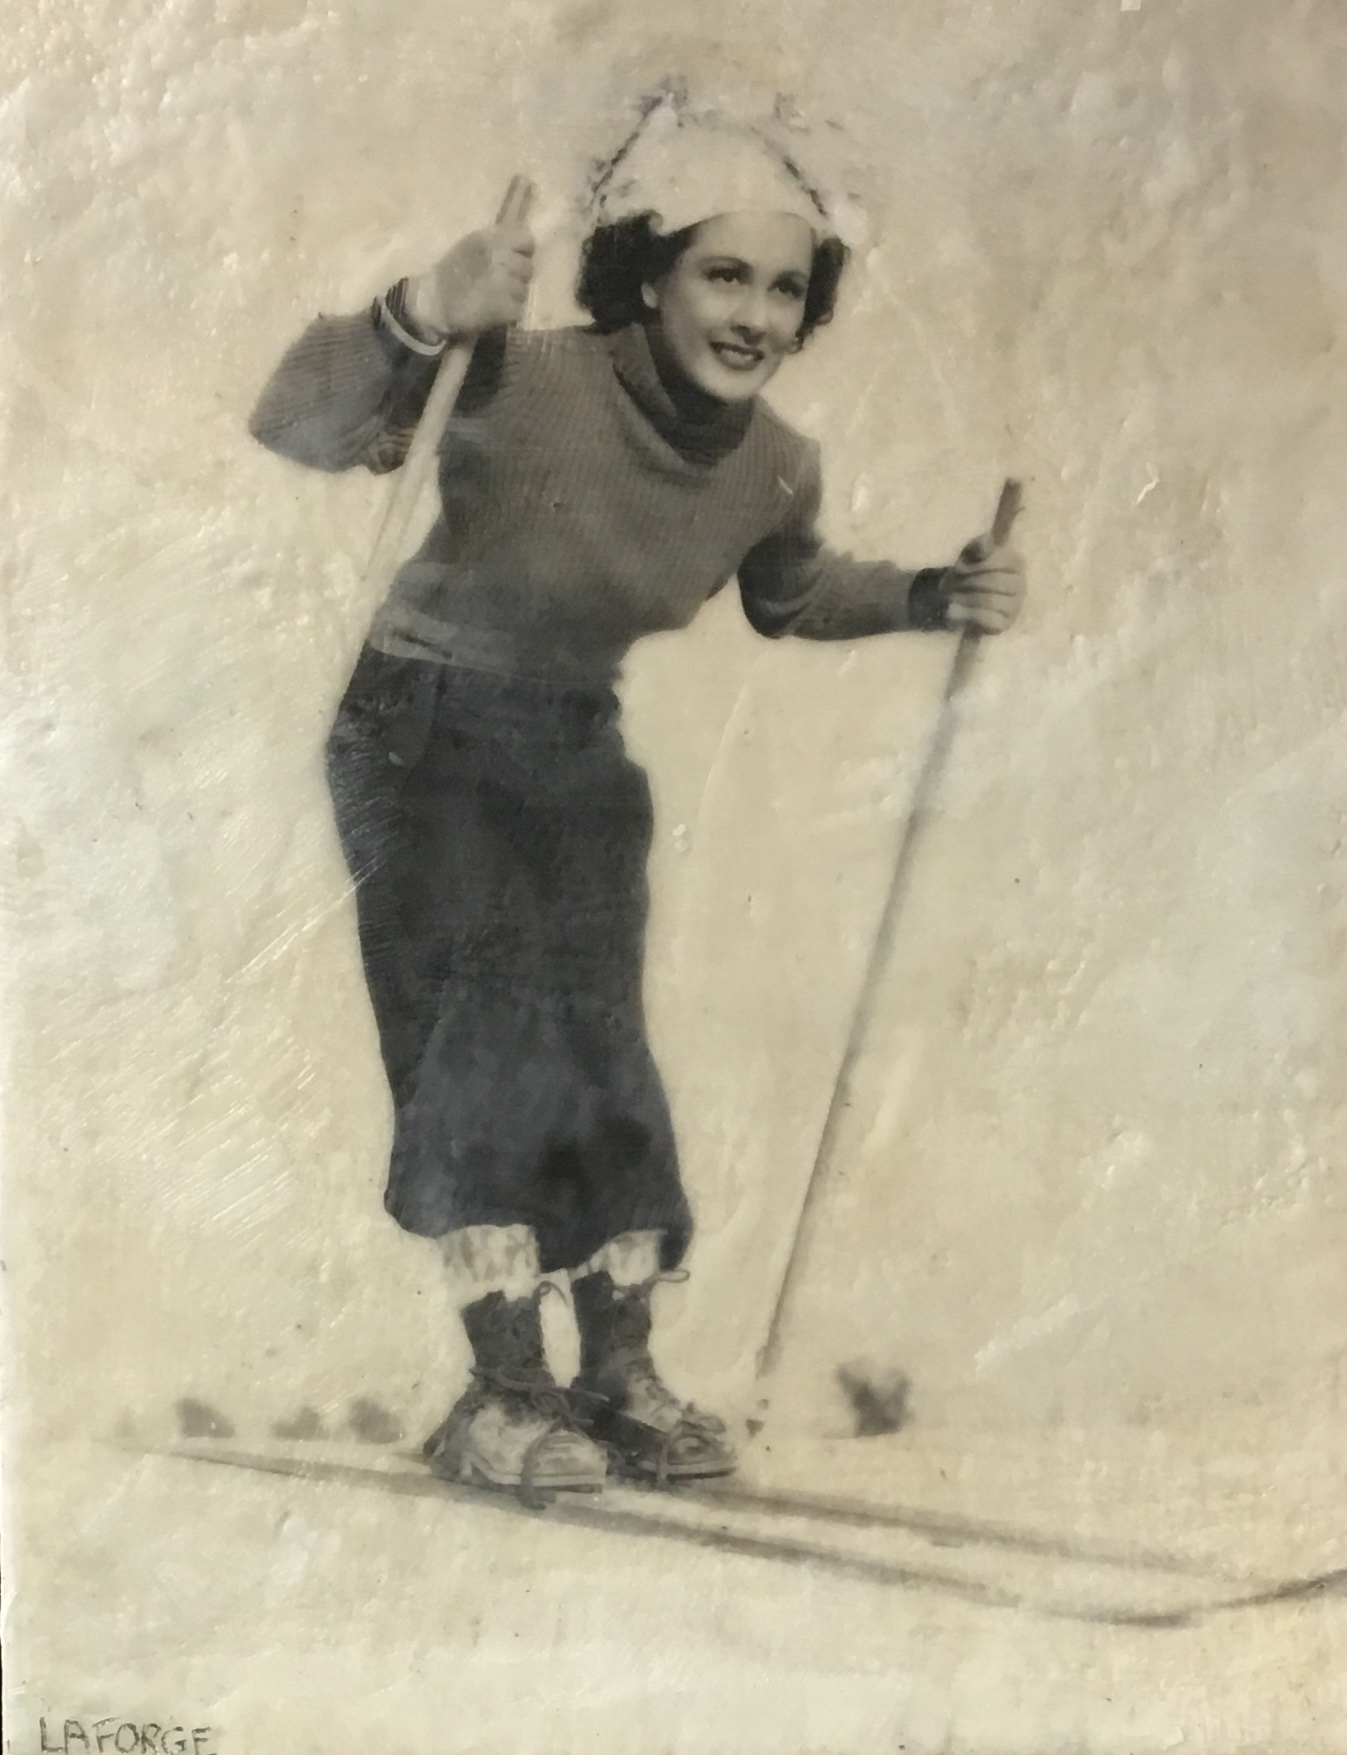 Vintage Skier 3, Encaustic painting by Lee Anne LaForge   Effusion Art Gallery + Cast Glass Studio, Invermere BC